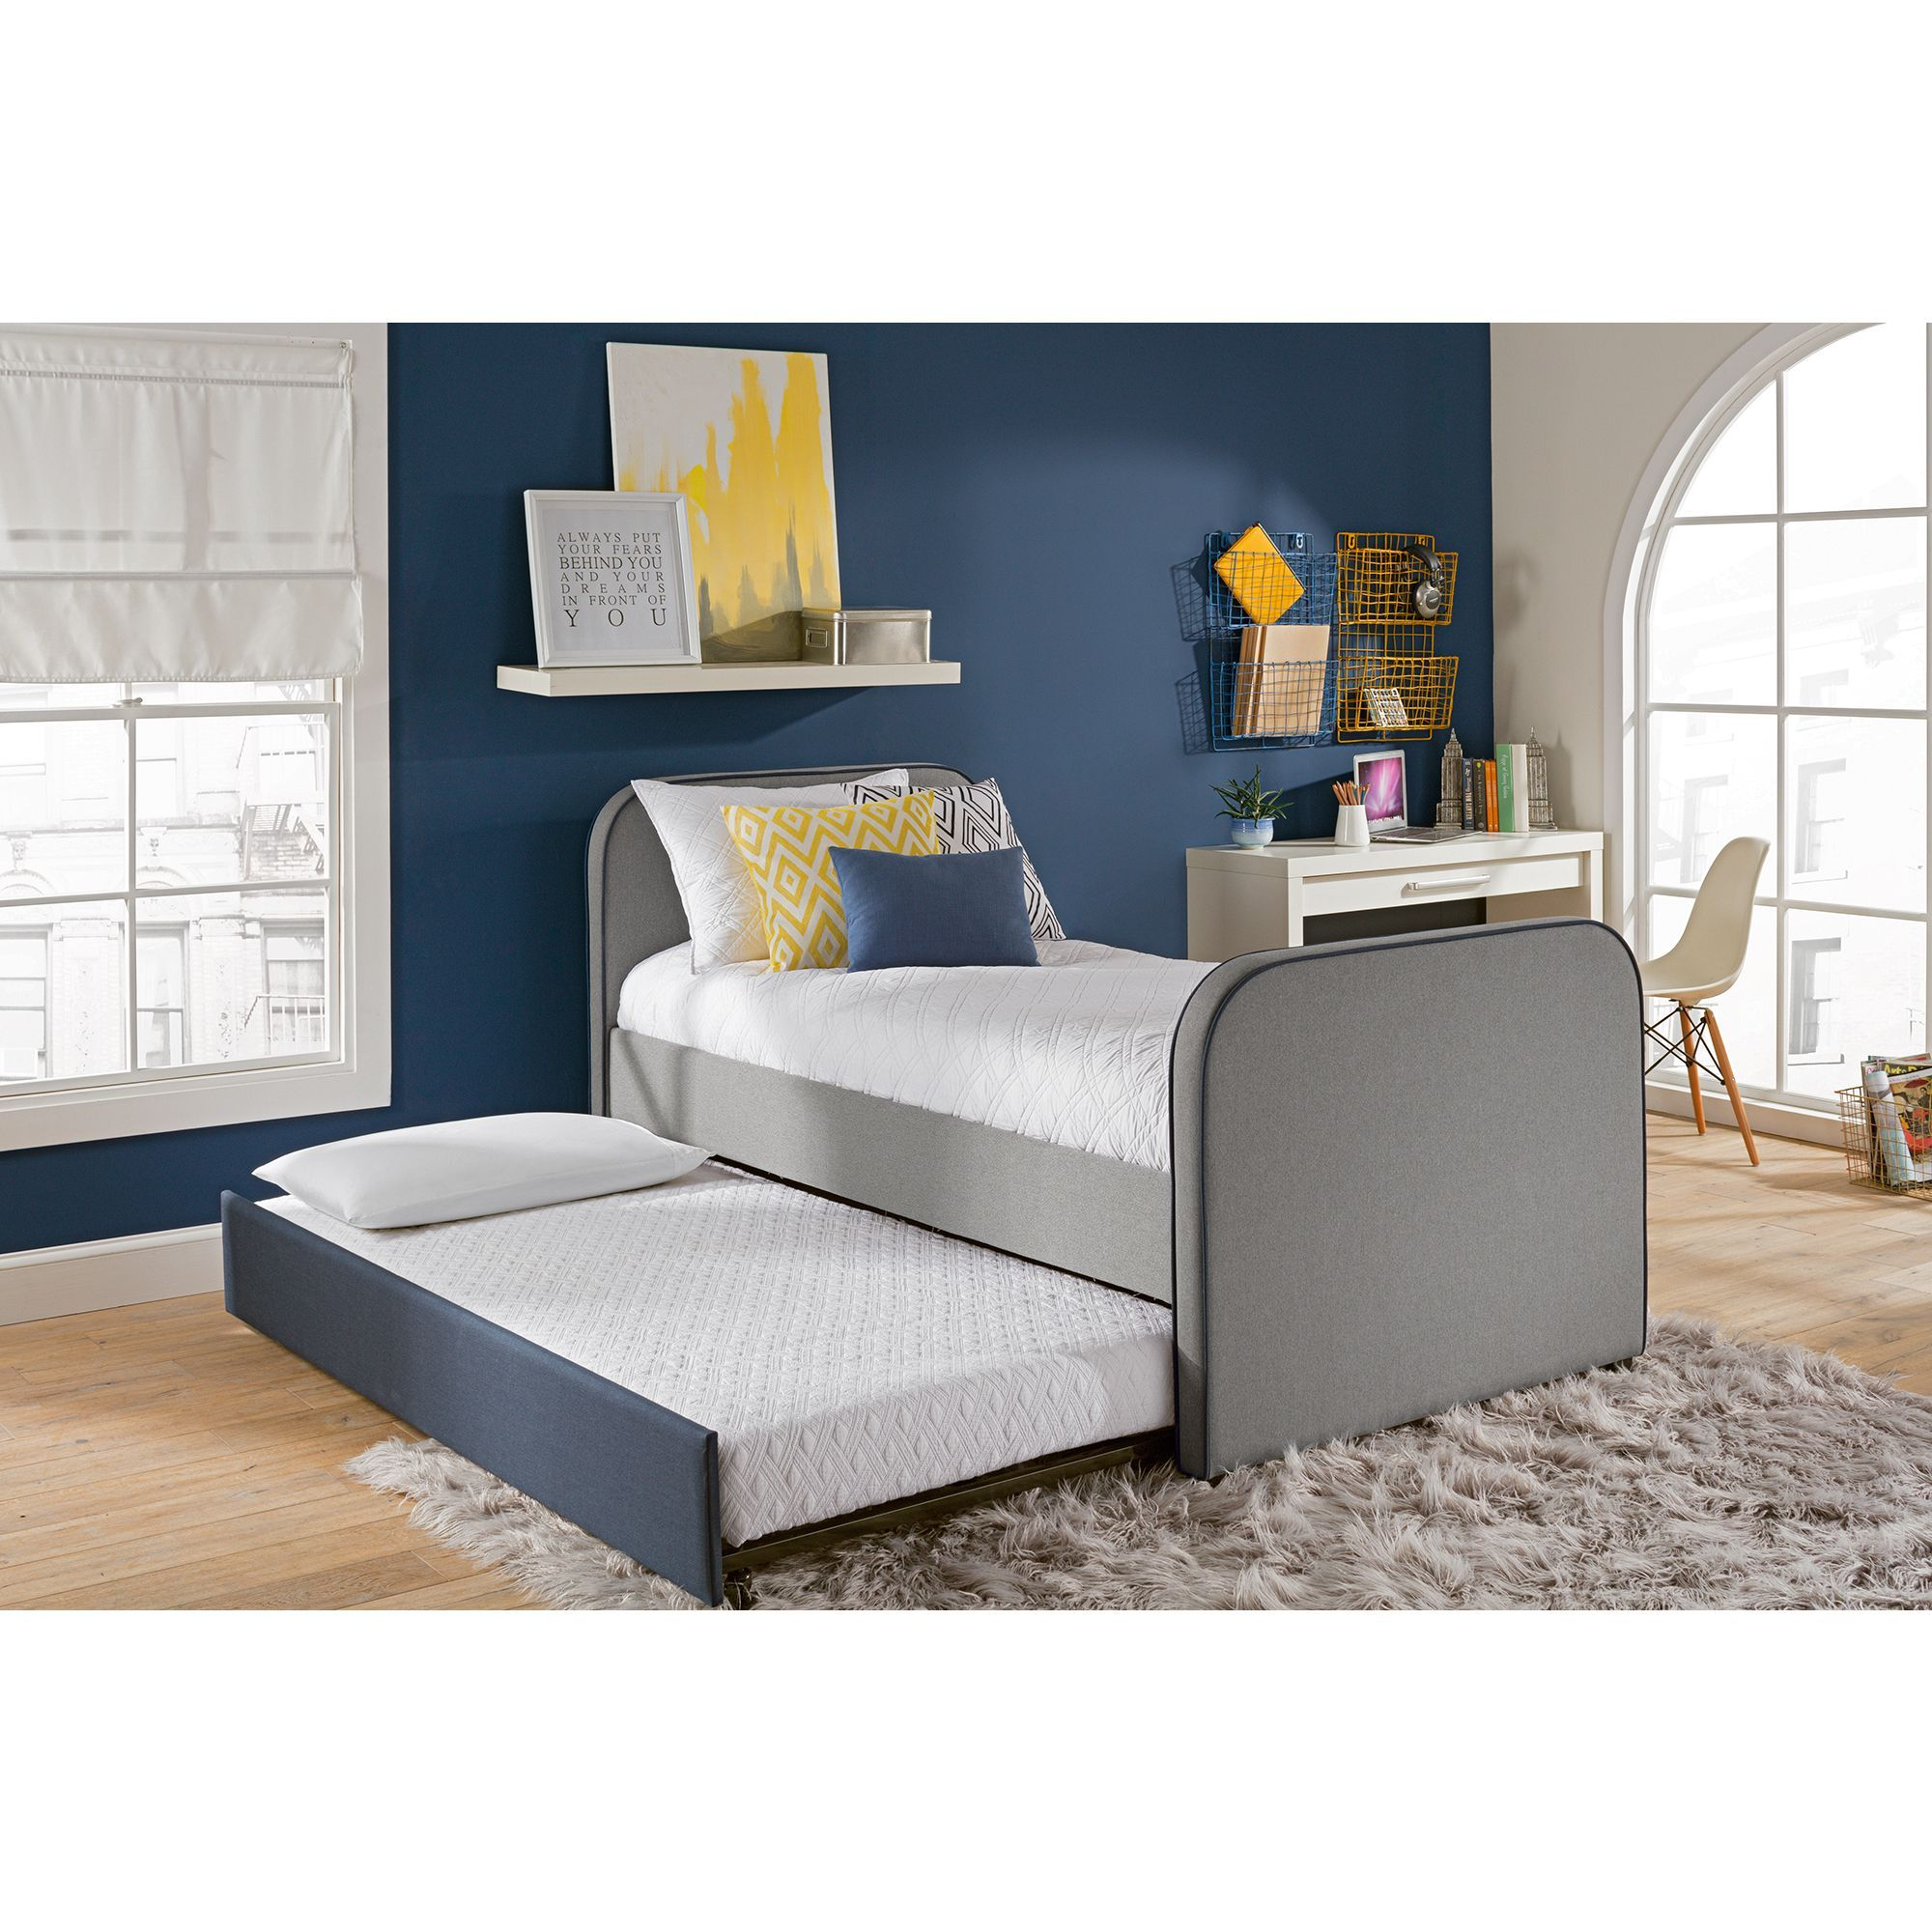 Kids Toddler Beds Twin Trundle Bed Trundle Bed Cheap Twin Beds Cheap twin beds with trundles